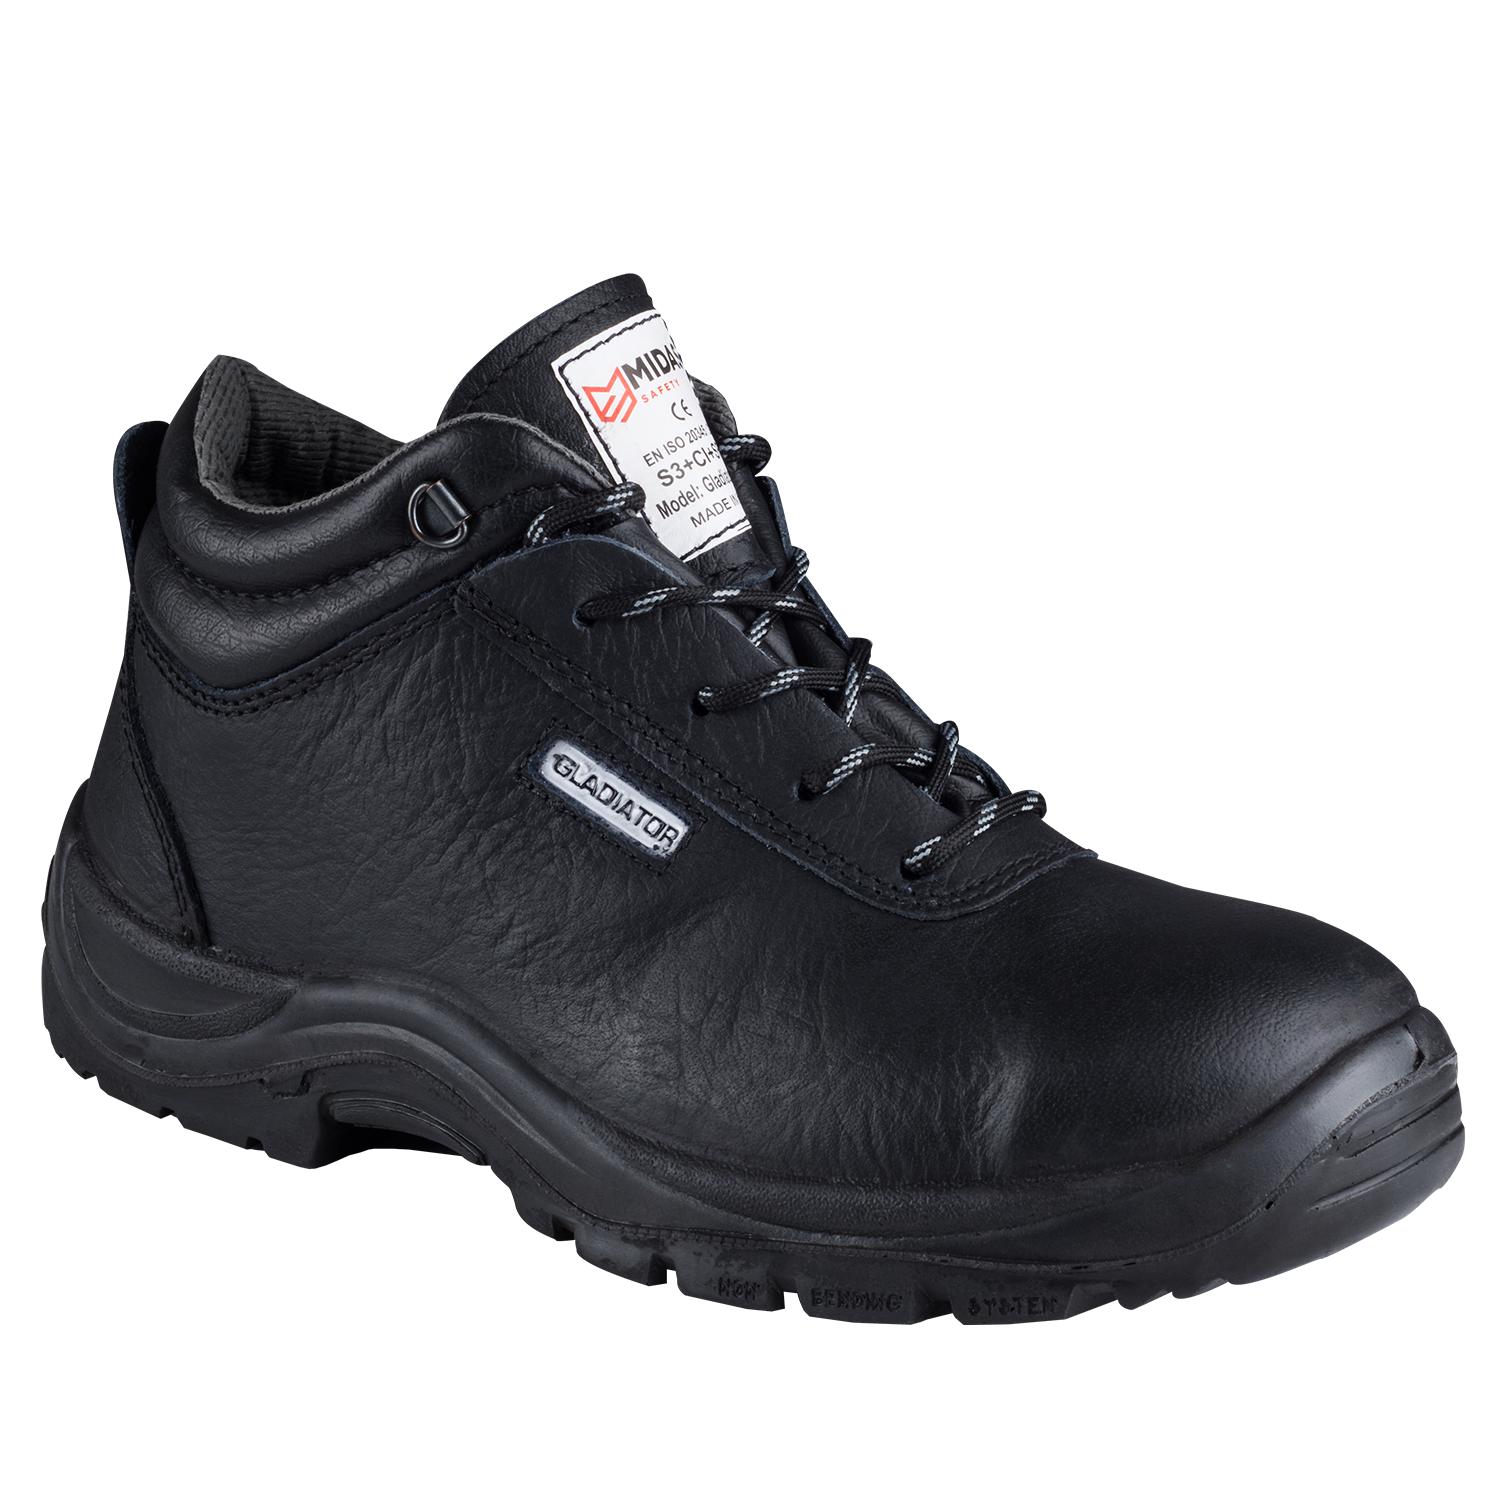 Guardian High Ankle Safety Shoes Foot Protection